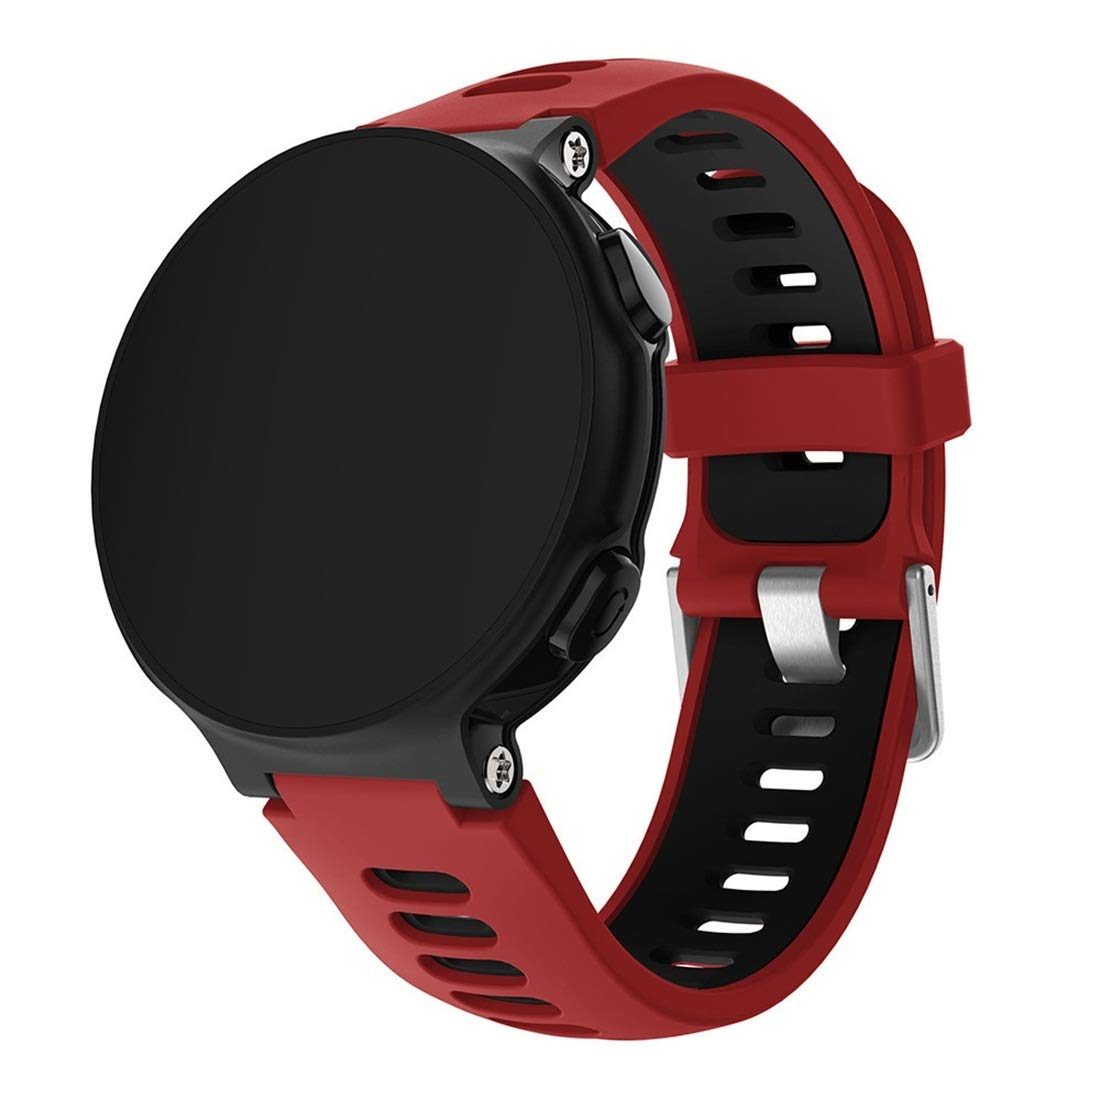 Smart Watch Silicone Wrist Strap Watchband for Garmin Forerunner 735XT Premium Quality (Color : Red) by GuiPing